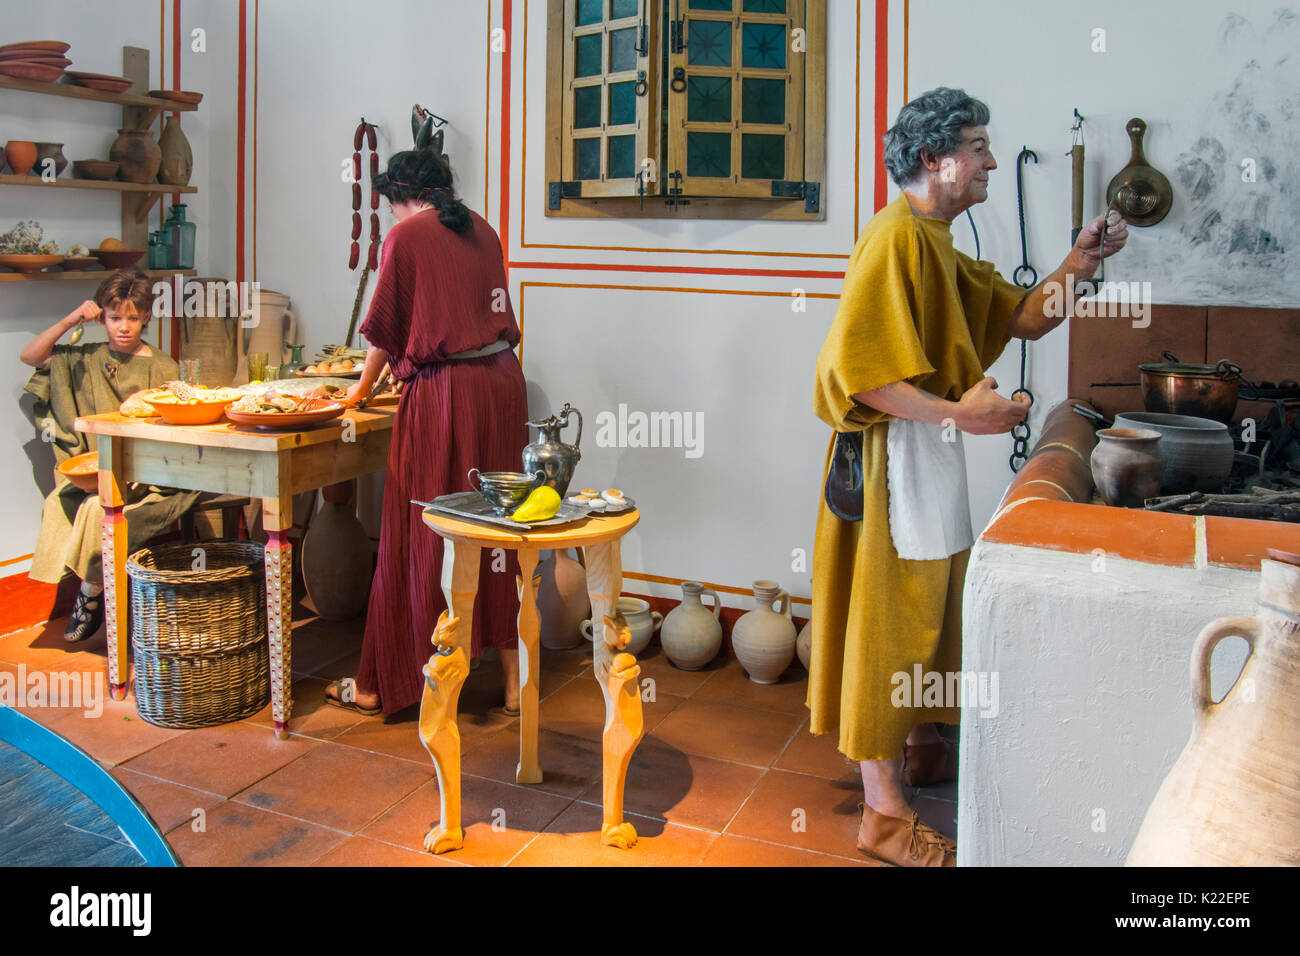 Diorama showing life-size figures depicting daily life in the kitchen of a Roman villa, Echternach, Luxembourg - Stock Image